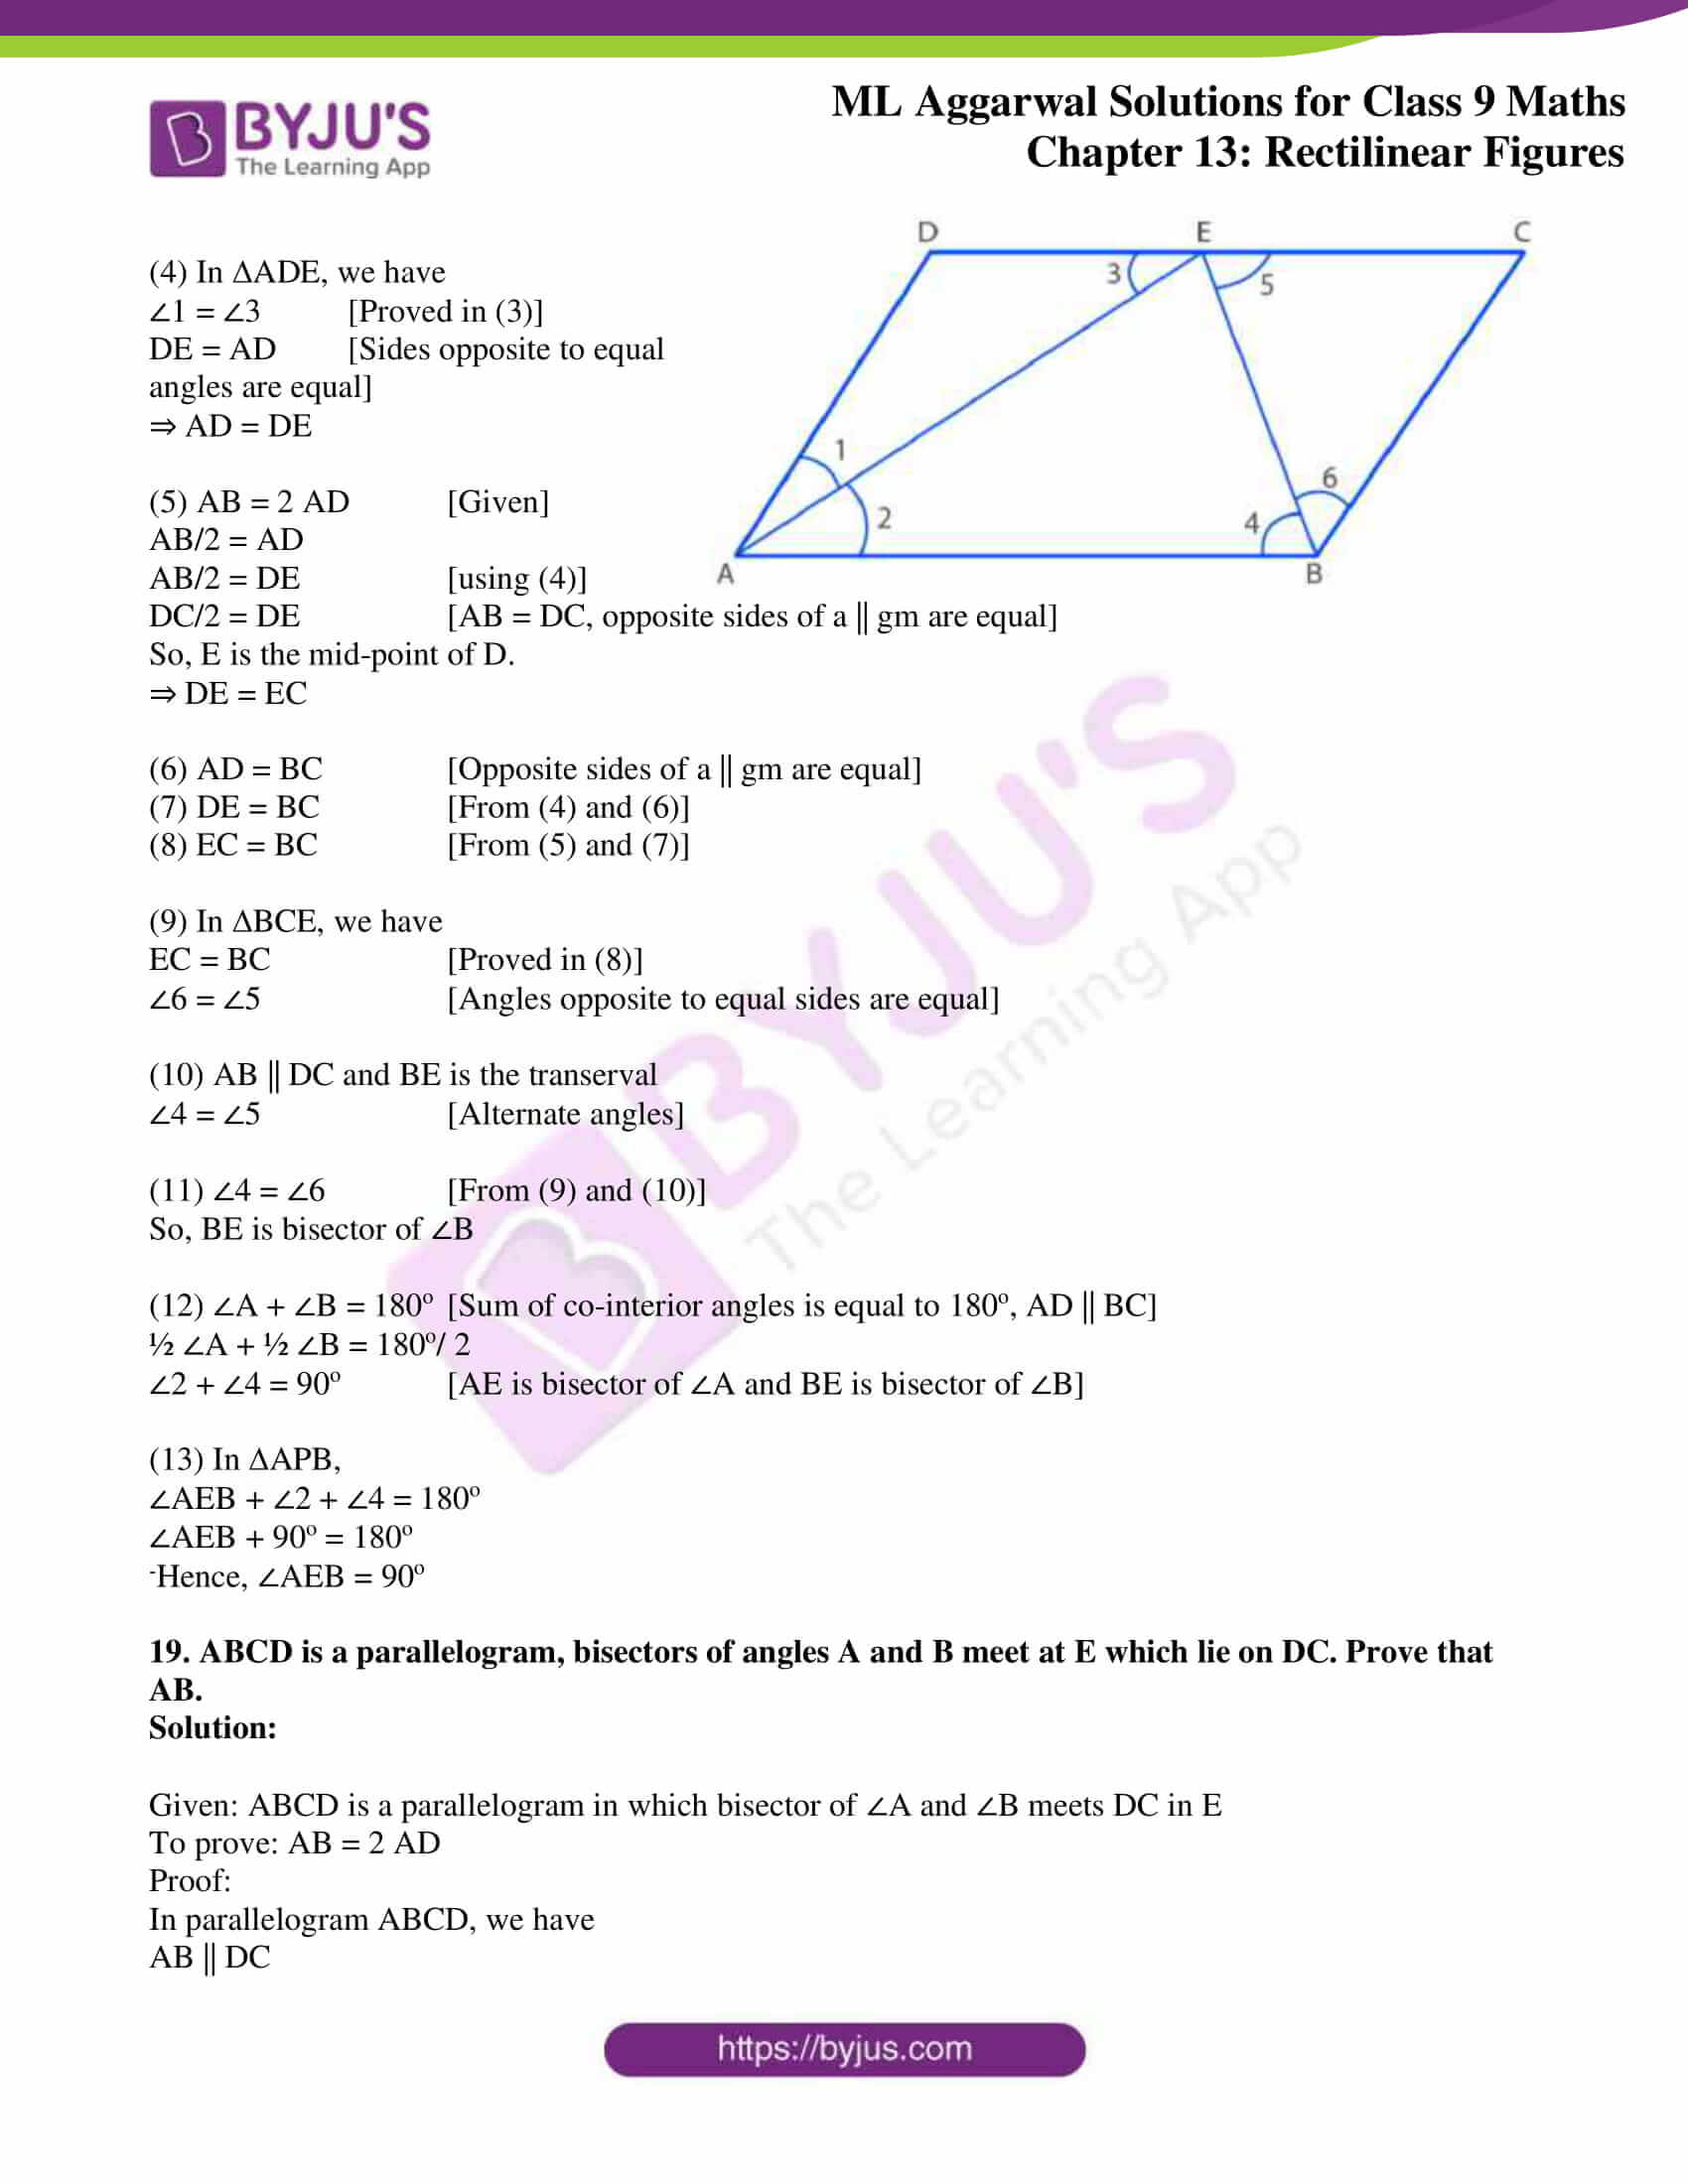 ml aggarwal solutions for class 9 maths chapter 13 19